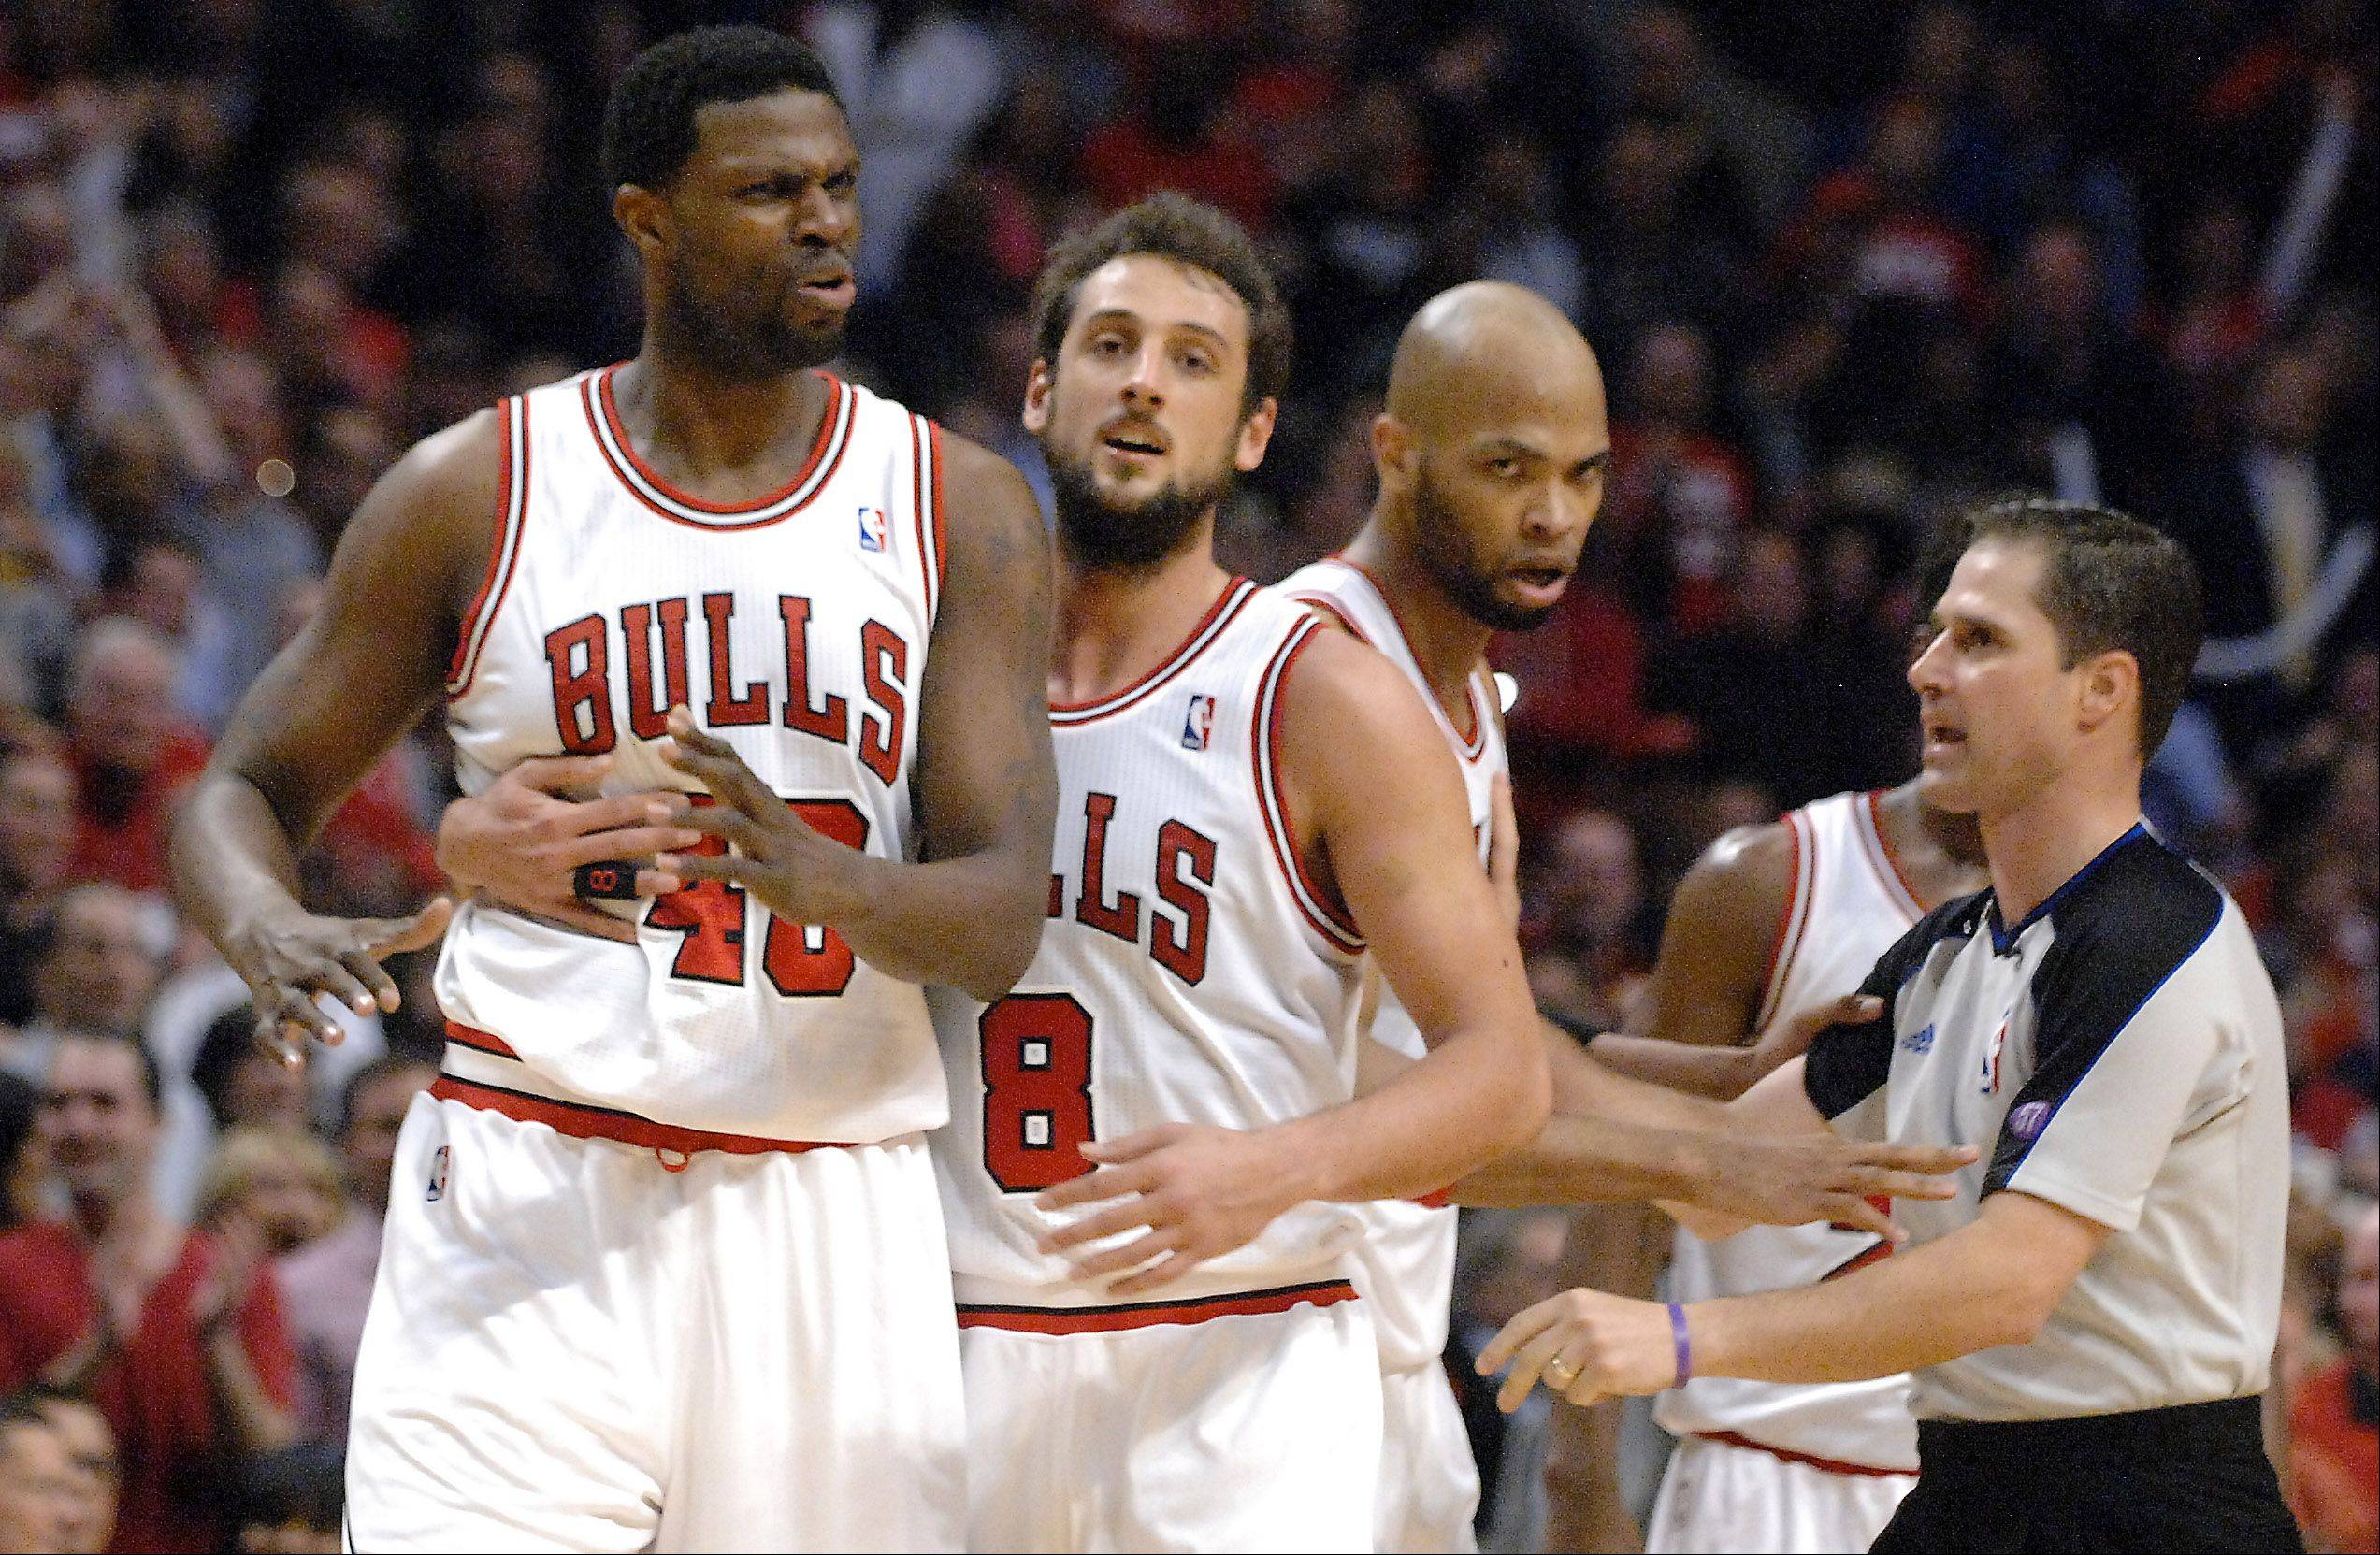 Teammates hold back Chicago Bulls center Nazr Mohammed (48) after his foul on Miami Heat small forward LeBron James (6) during game 3 of the NBA Eastern Conference semifinals at the United Center in Chicago Friday.